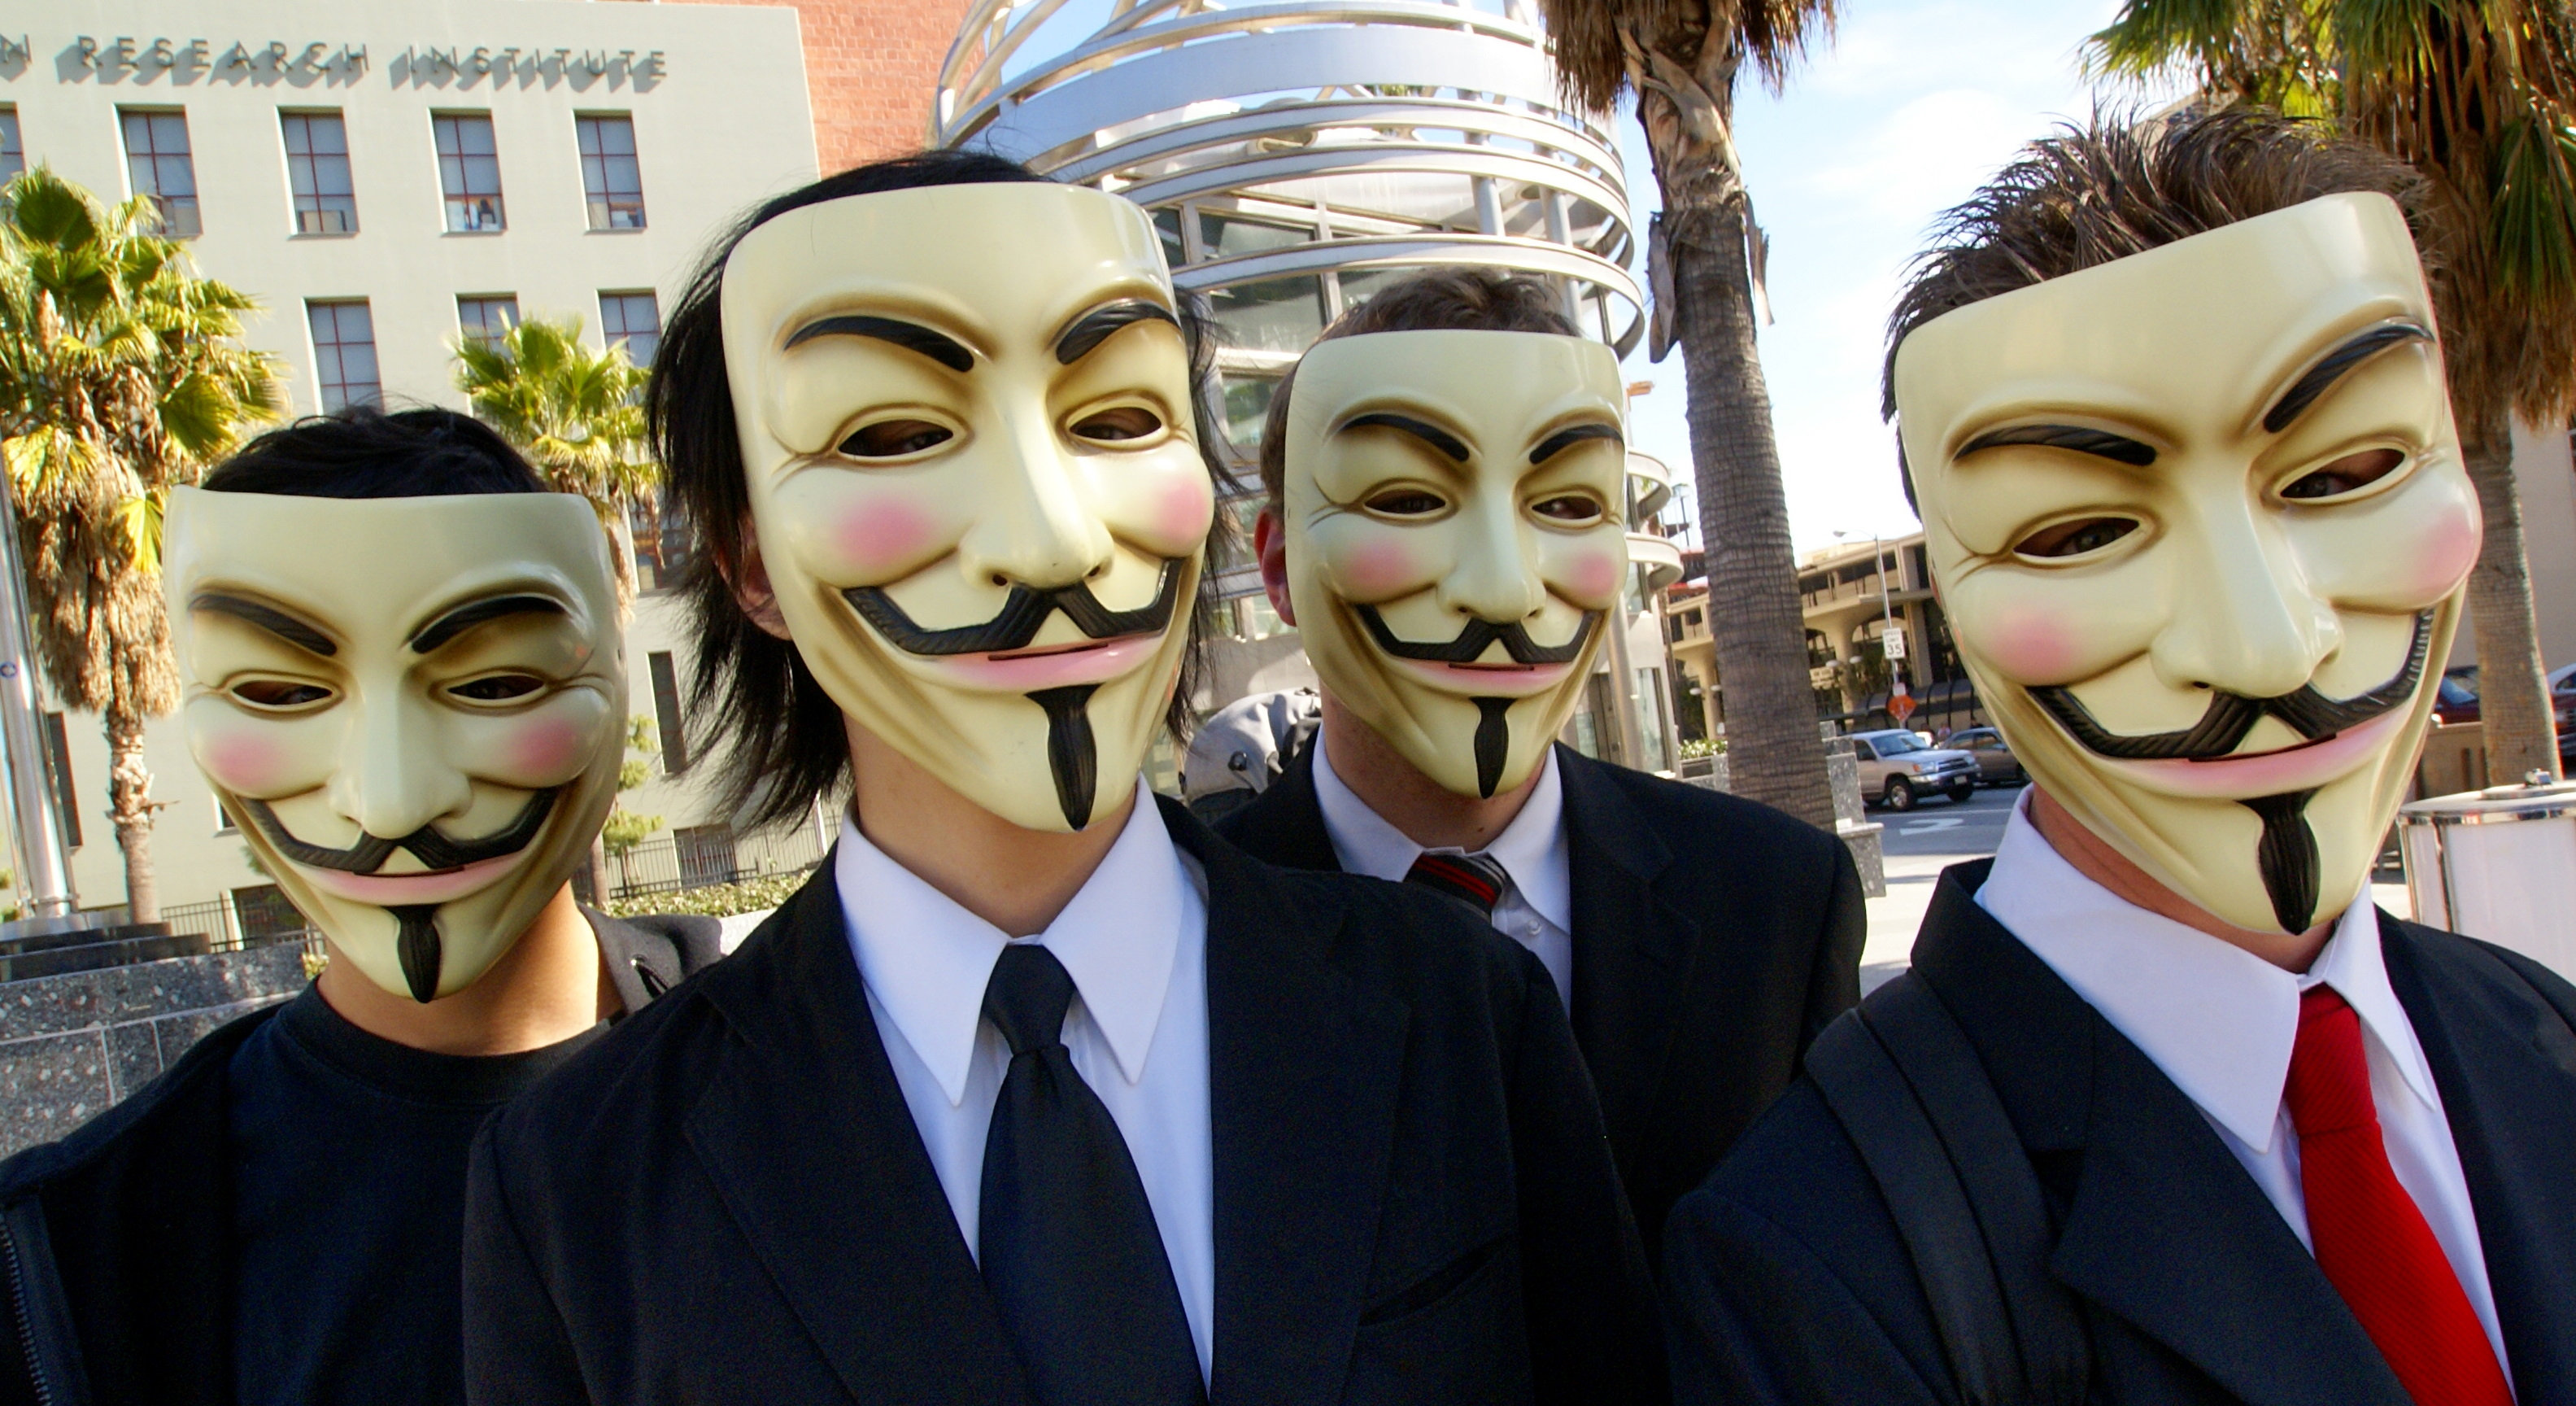 Integrantes do Anonymous